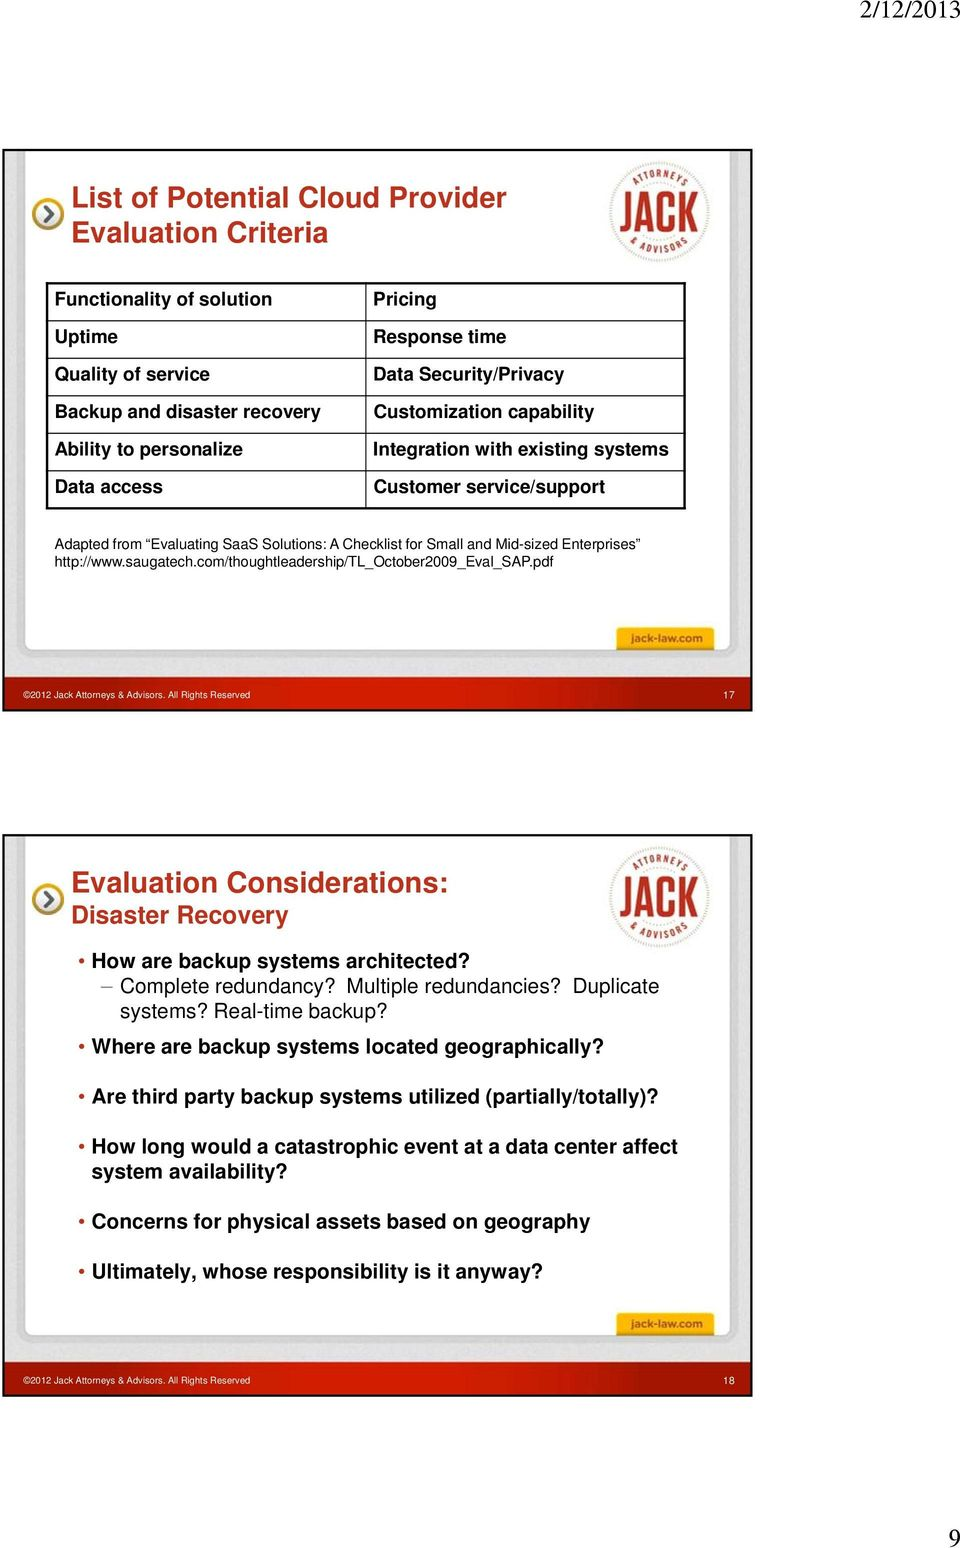 saugatech.com/thoughtleadership/tl_october2009_eval_sap.pdf 2012 Jack Attorneys & Advisors. All Rights Reserved 17 Evaluation Considerations: Disaster Recovery How are backup systems architected?